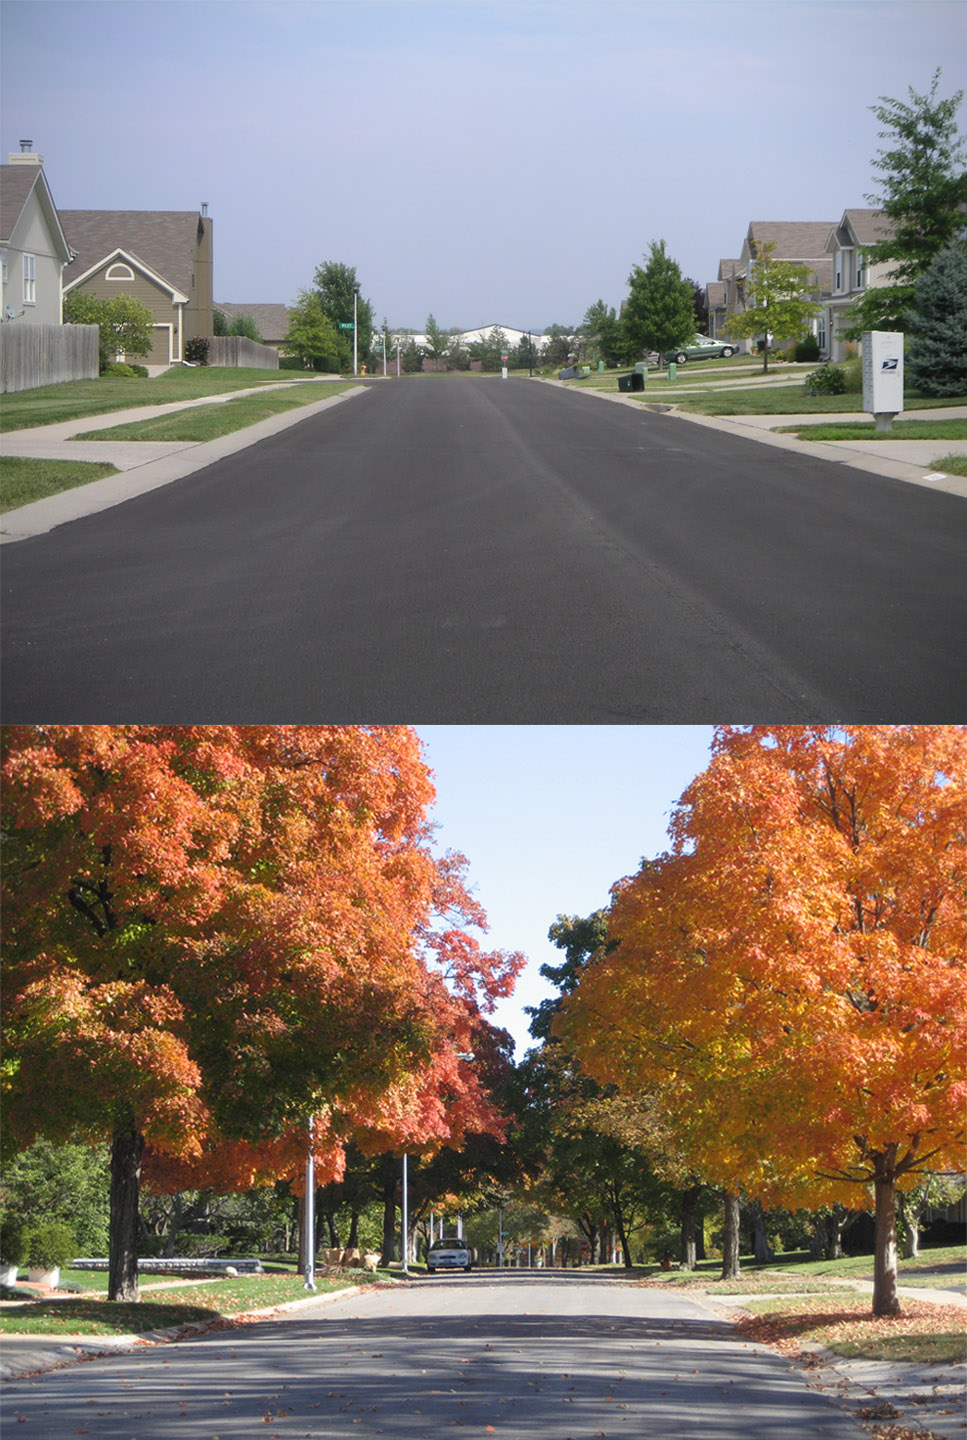 street without trees vs. street with trees